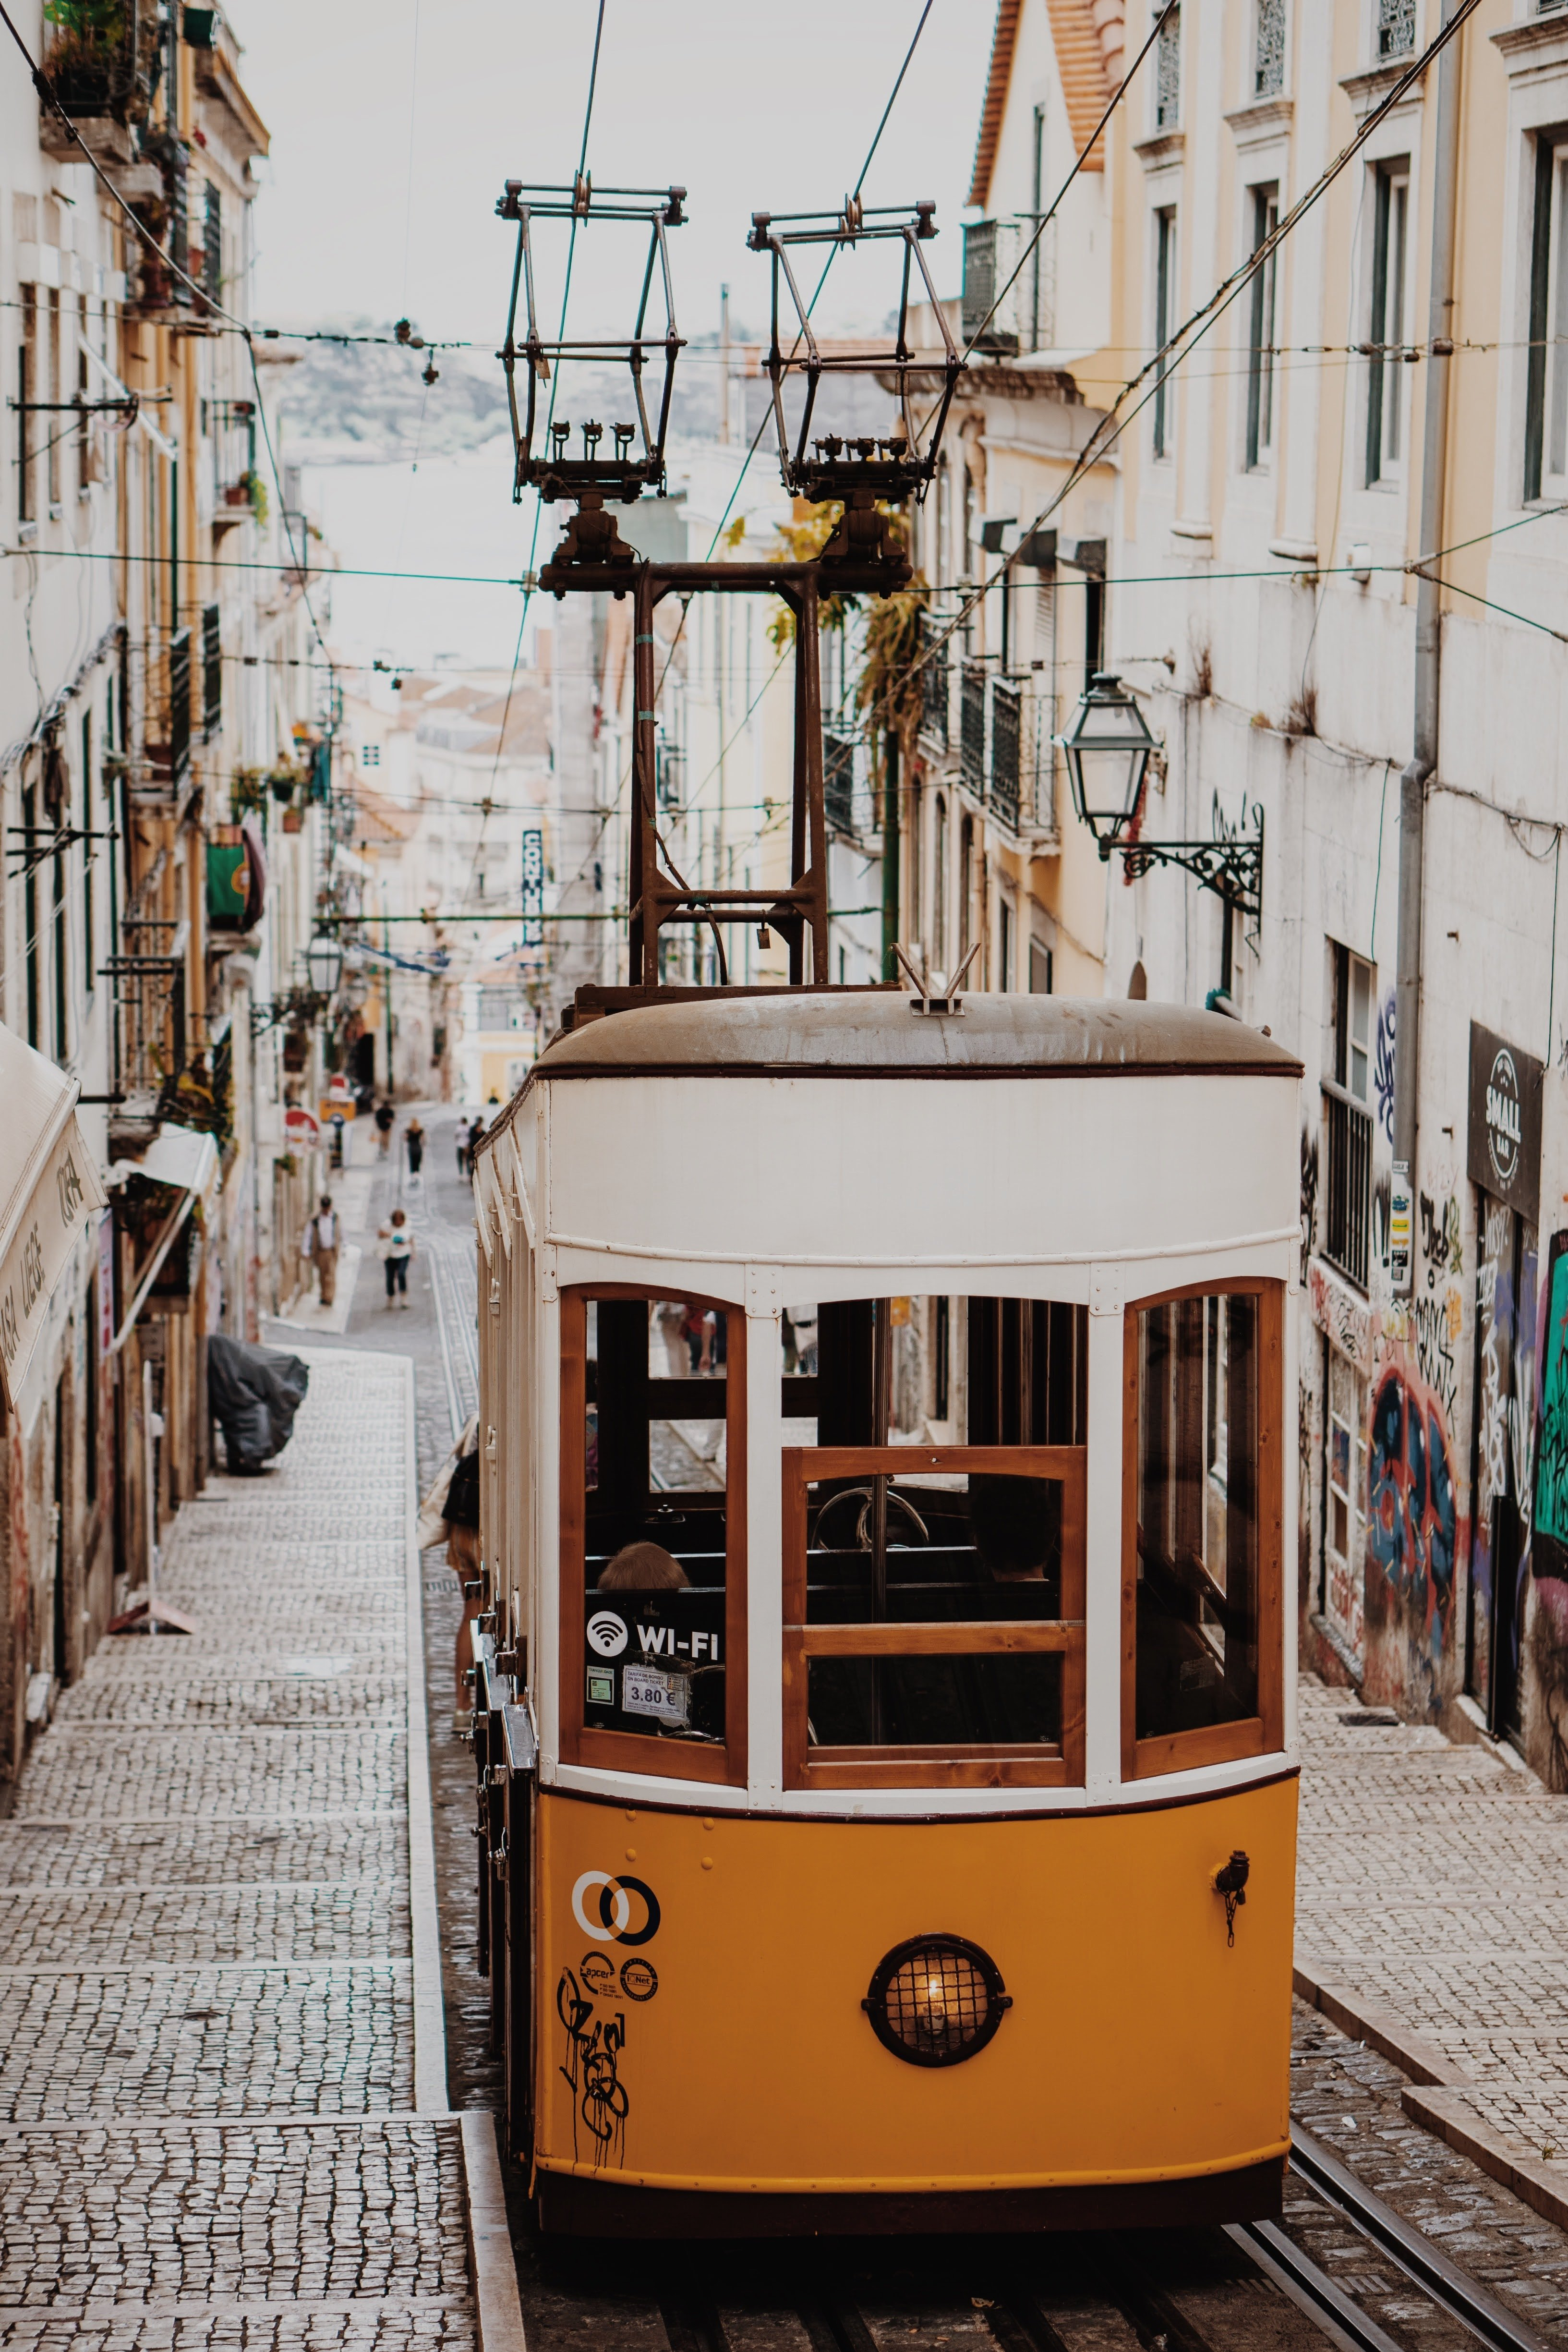 Image of Lisbon electric trams